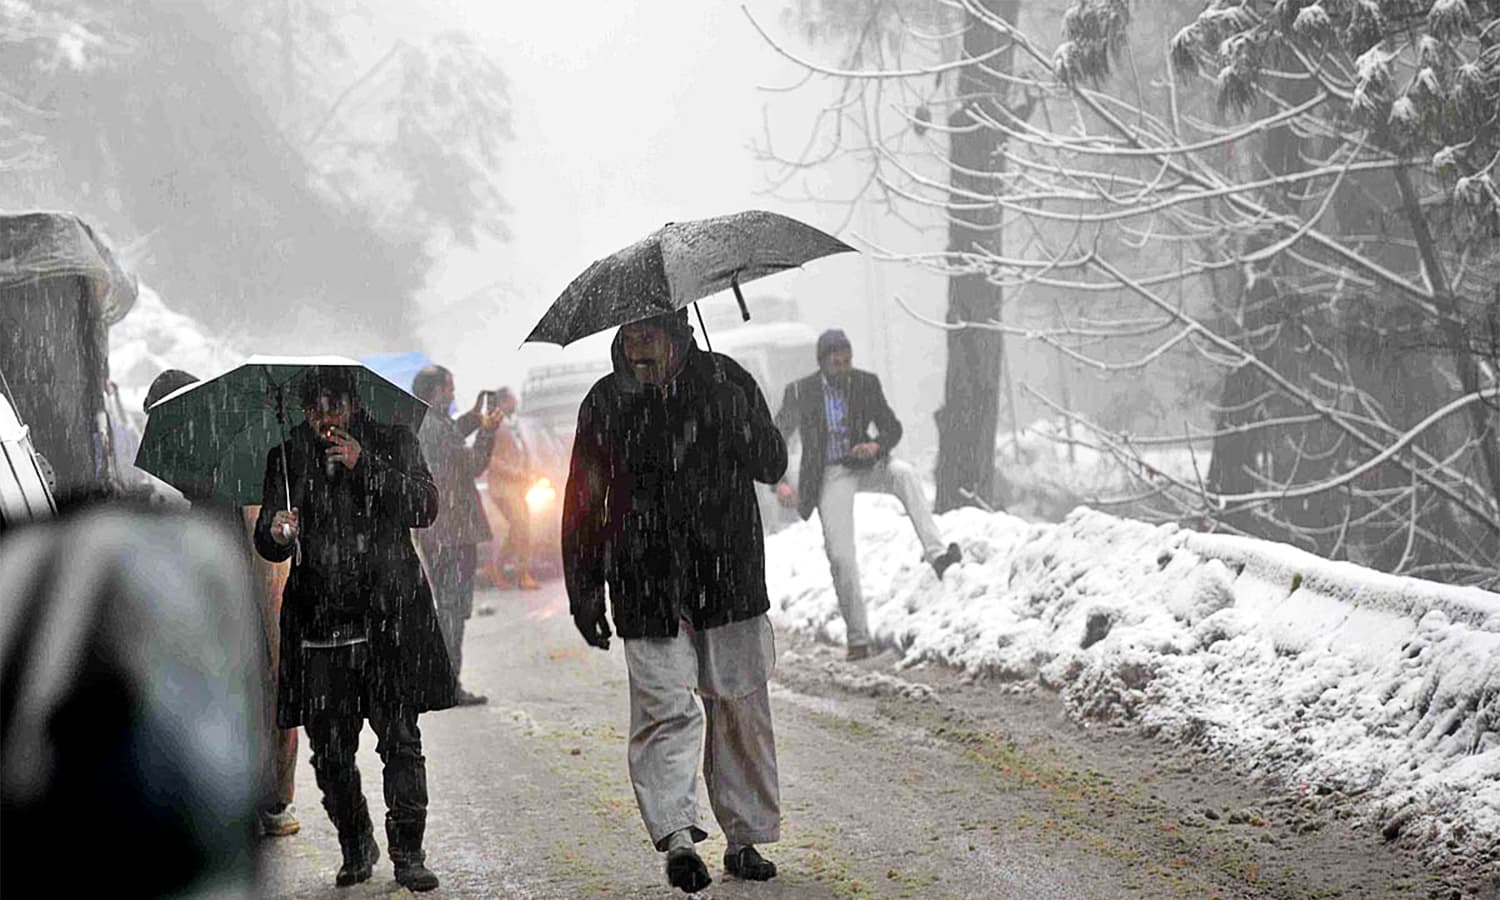 People walk under umbrellas during the first snowfall of the year in Murree.— APP